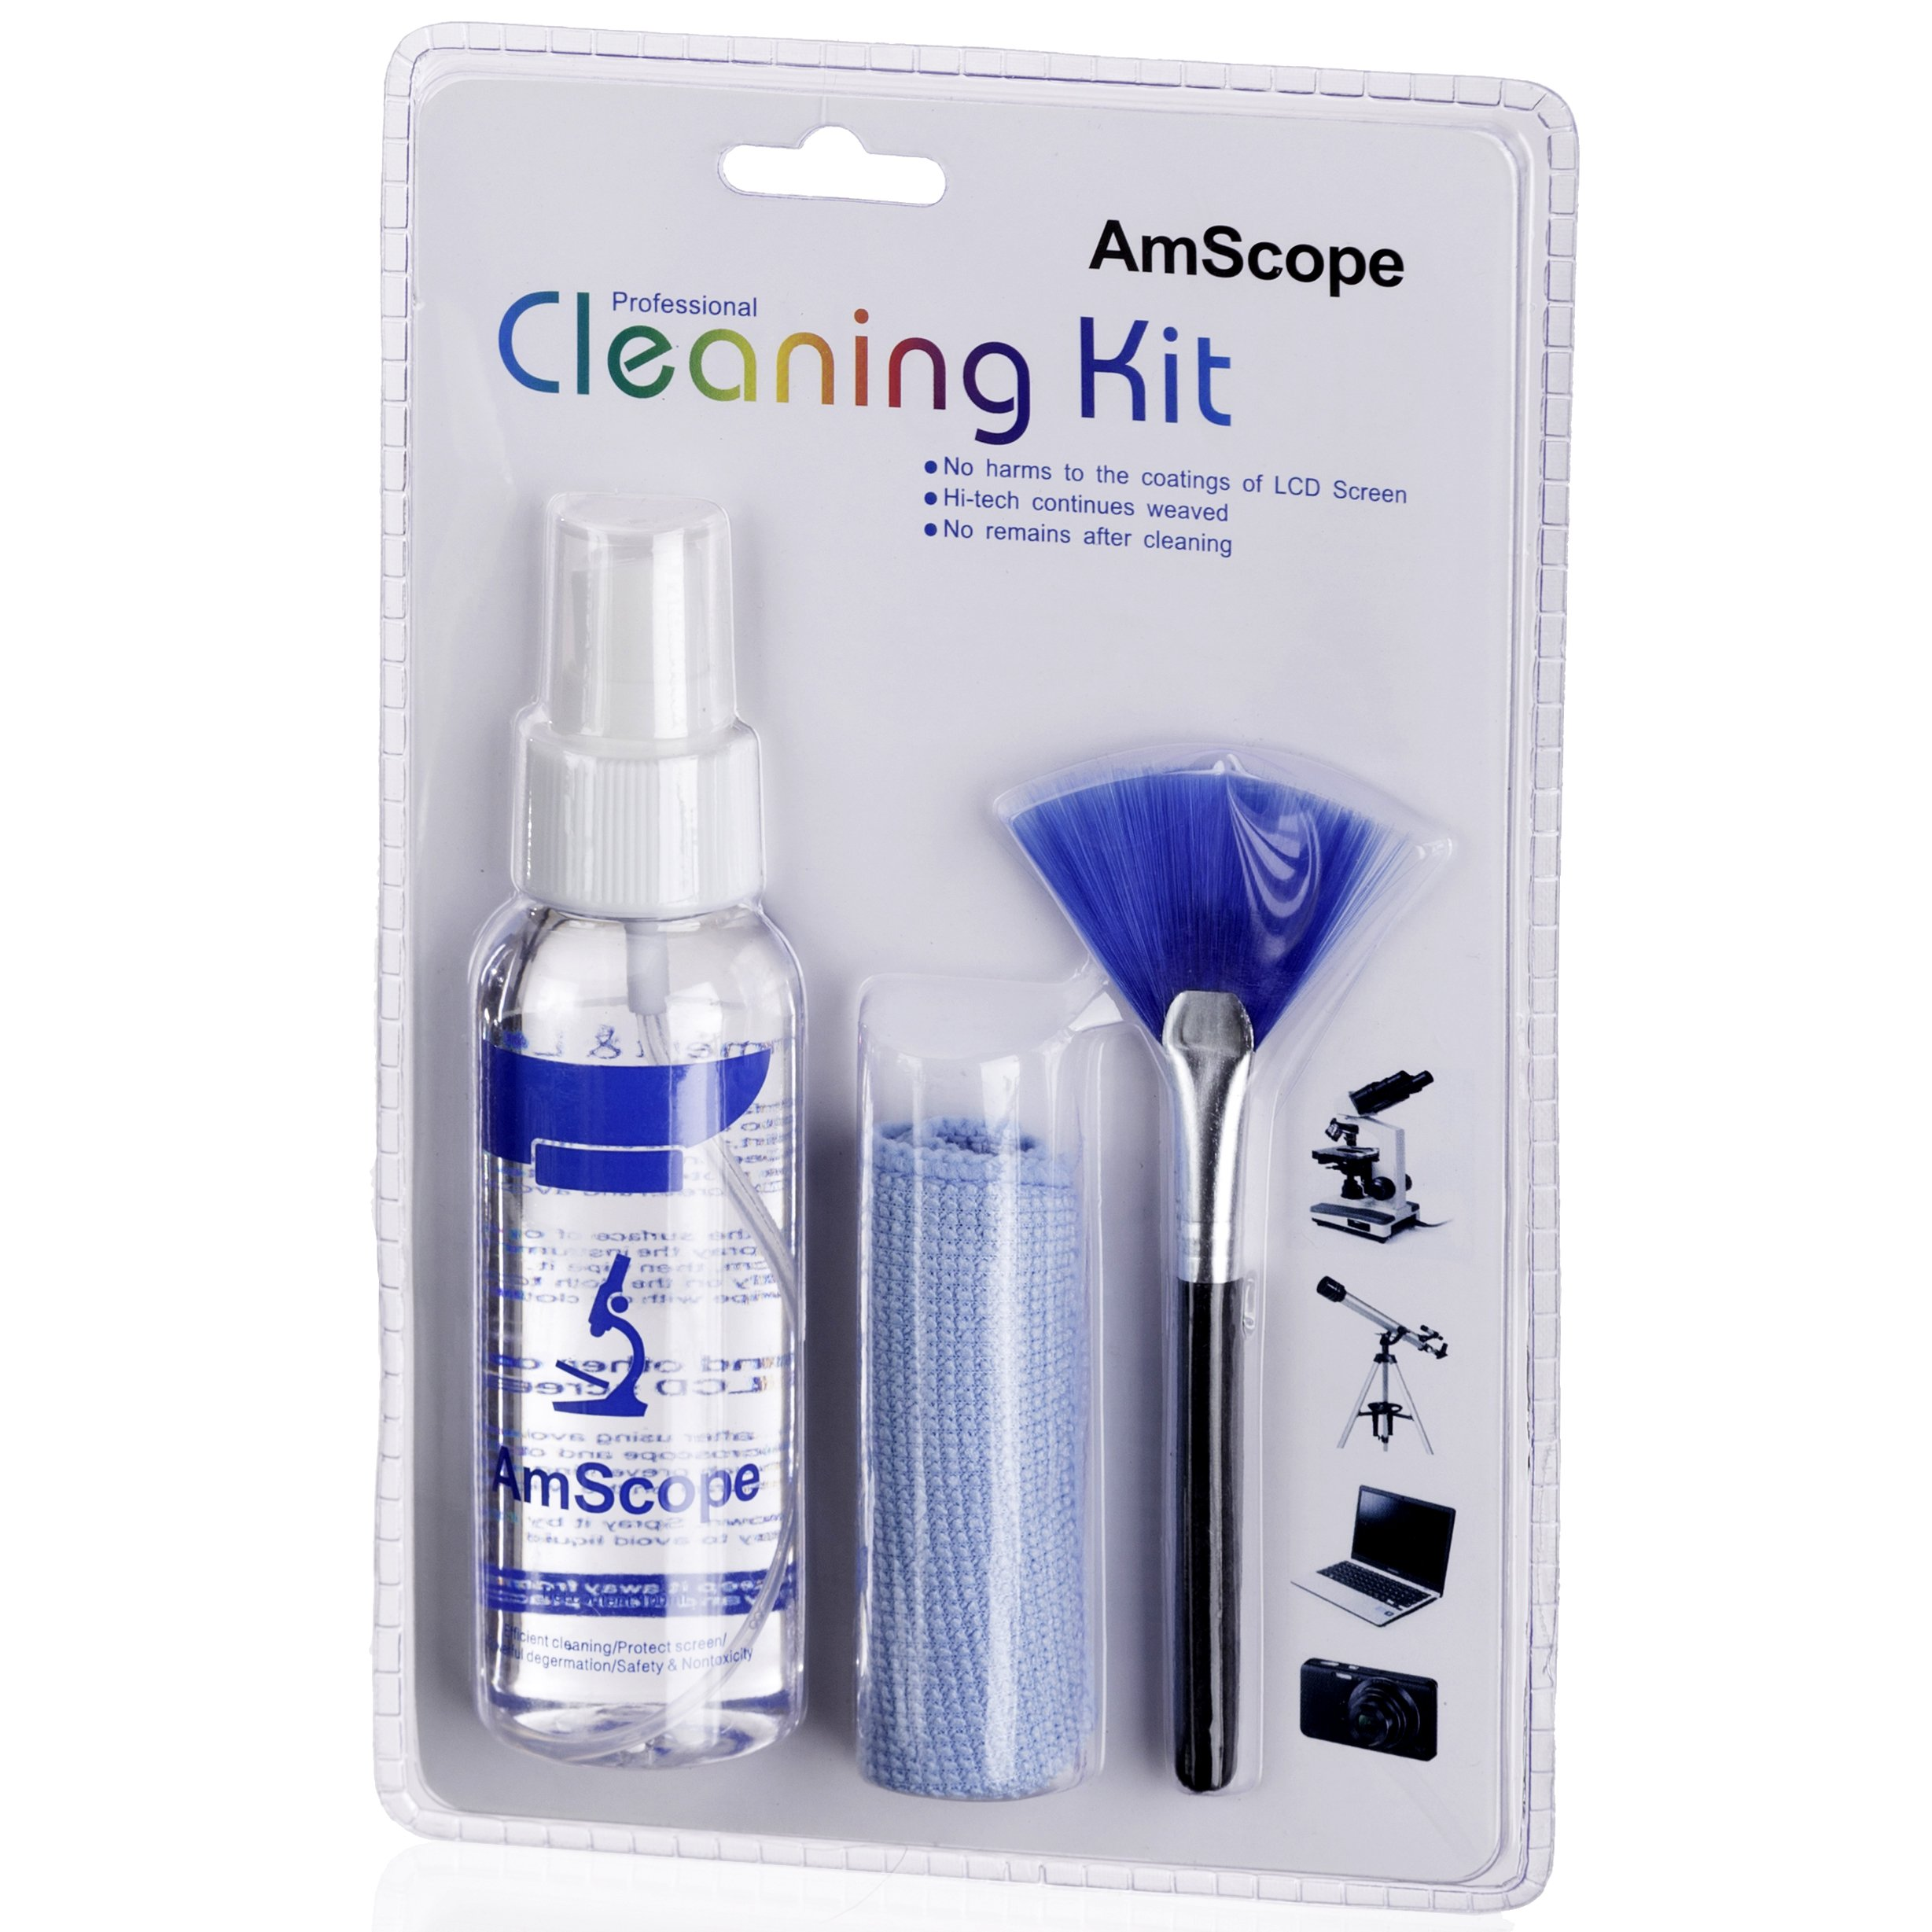 AmScope CK-I 3-in-1 LCD Professional Cleaning Kit for Microscope, Laptop, TV and Monitor by AmScope